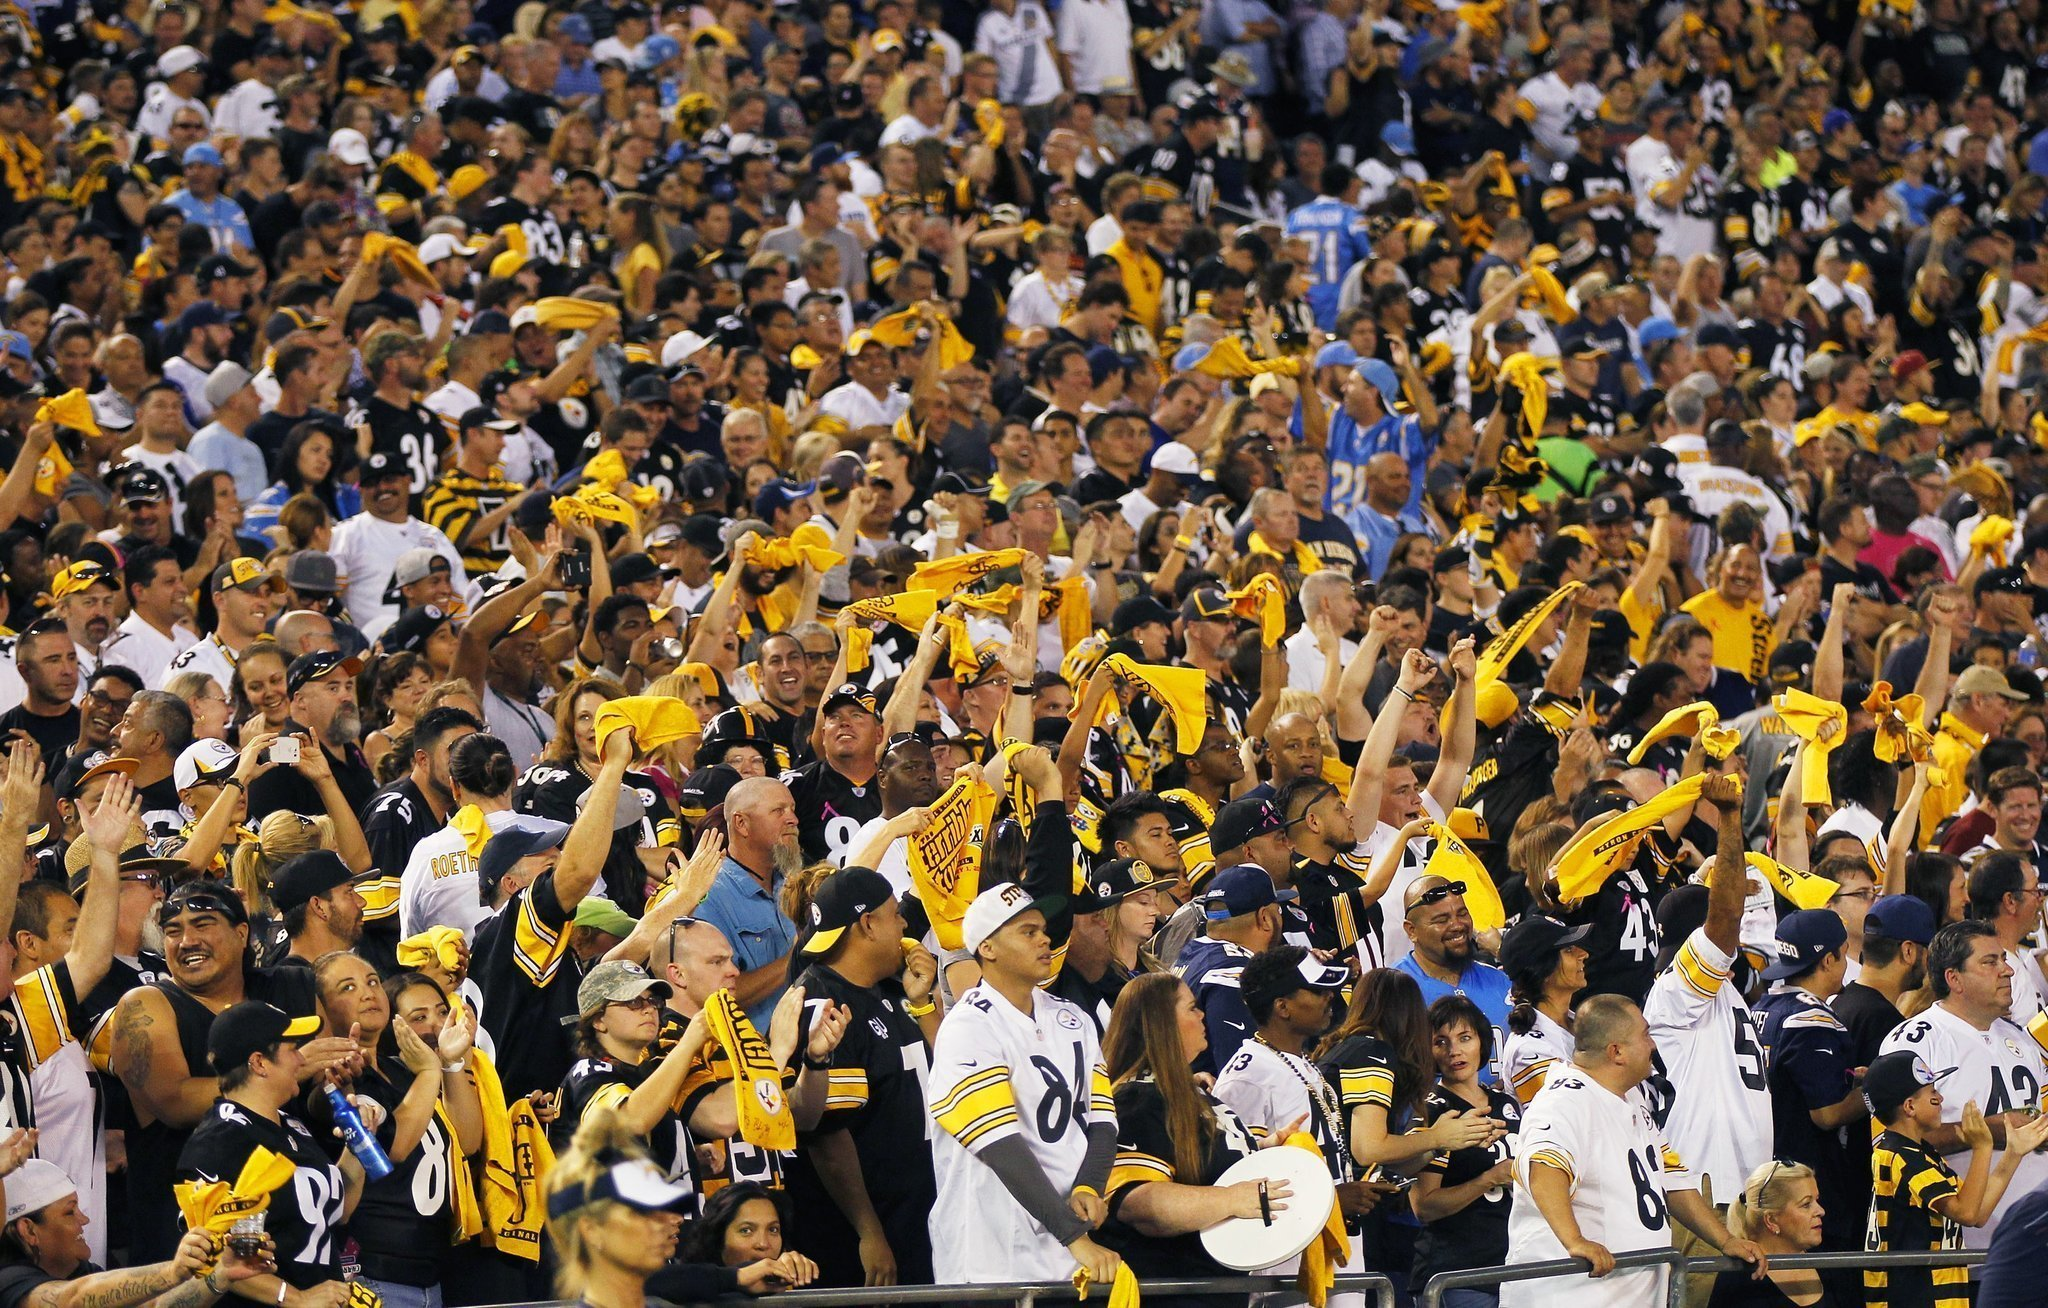 Philip Rivers Crowd Noise At Chargers Game Odd The